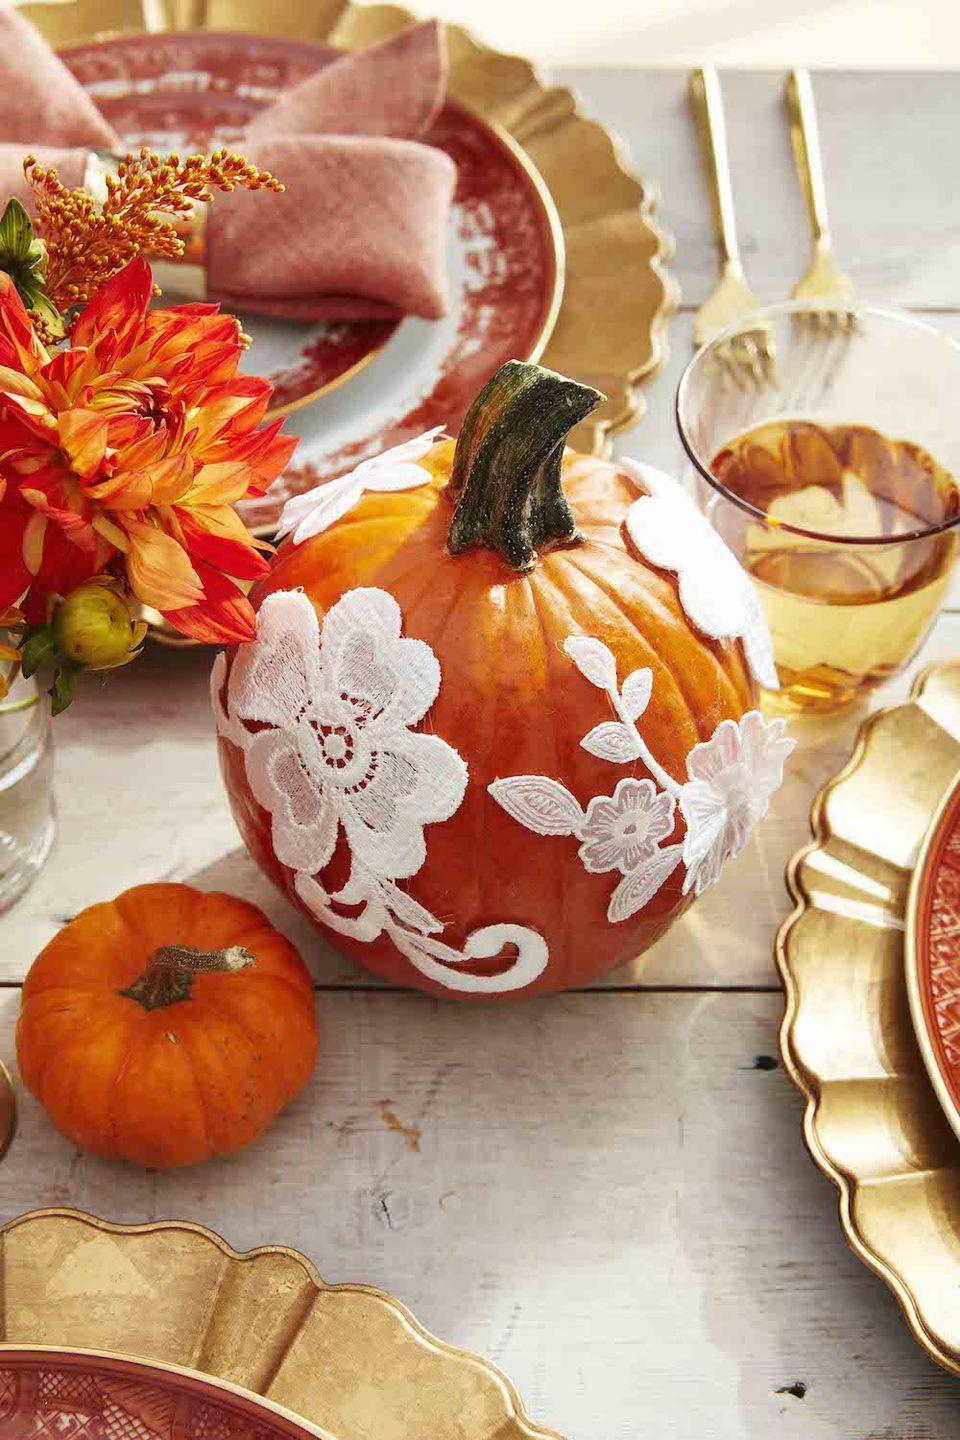 """<p>Add some flair to traditional orange pumpkins by detailing them with white lace appliqué. This pumpkin decorating idea is a less messy alternative to carving.</p><p><a class=""""link rapid-noclick-resp"""" href=""""https://www.amazon.com/Floral-Applique-Sequins-Embroidery-Craft/dp/B01NAQ1IZ0/?tag=syn-yahoo-20&ascsubtag=%5Bartid%7C10050.g.3739%5Bsrc%7Cyahoo-us"""" rel=""""nofollow noopener"""" target=""""_blank"""" data-ylk=""""slk:SHOP WHITE LACE"""">SHOP WHITE LACE</a></p>"""